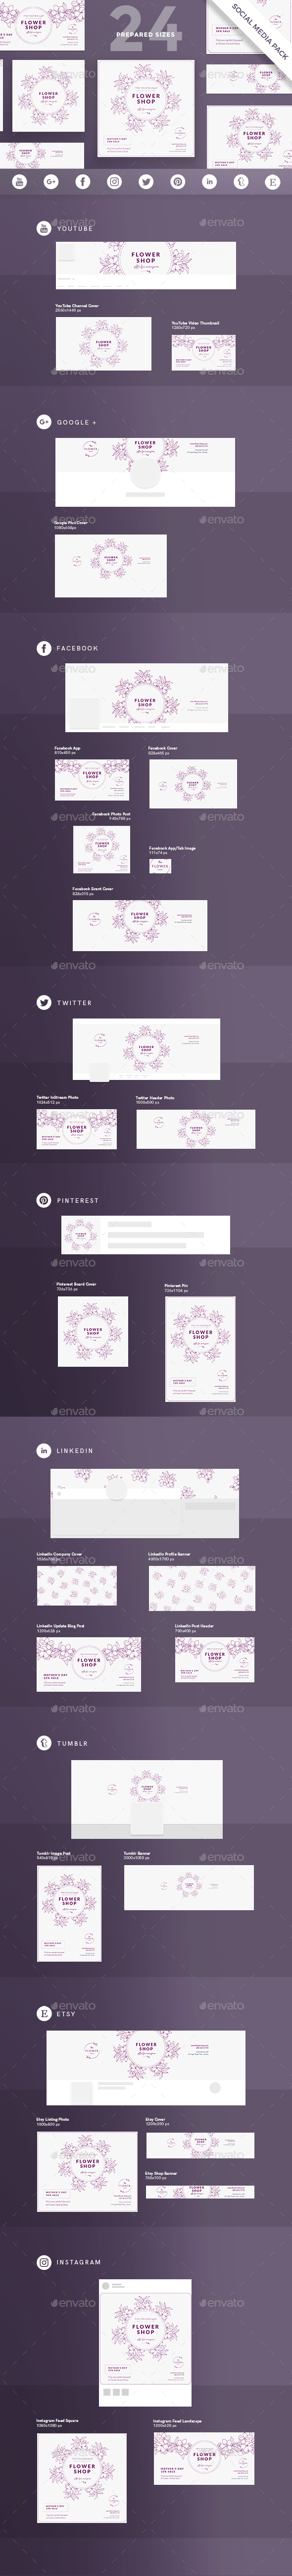 Flower Shop Social Media Pack - Miscellaneous Social Media